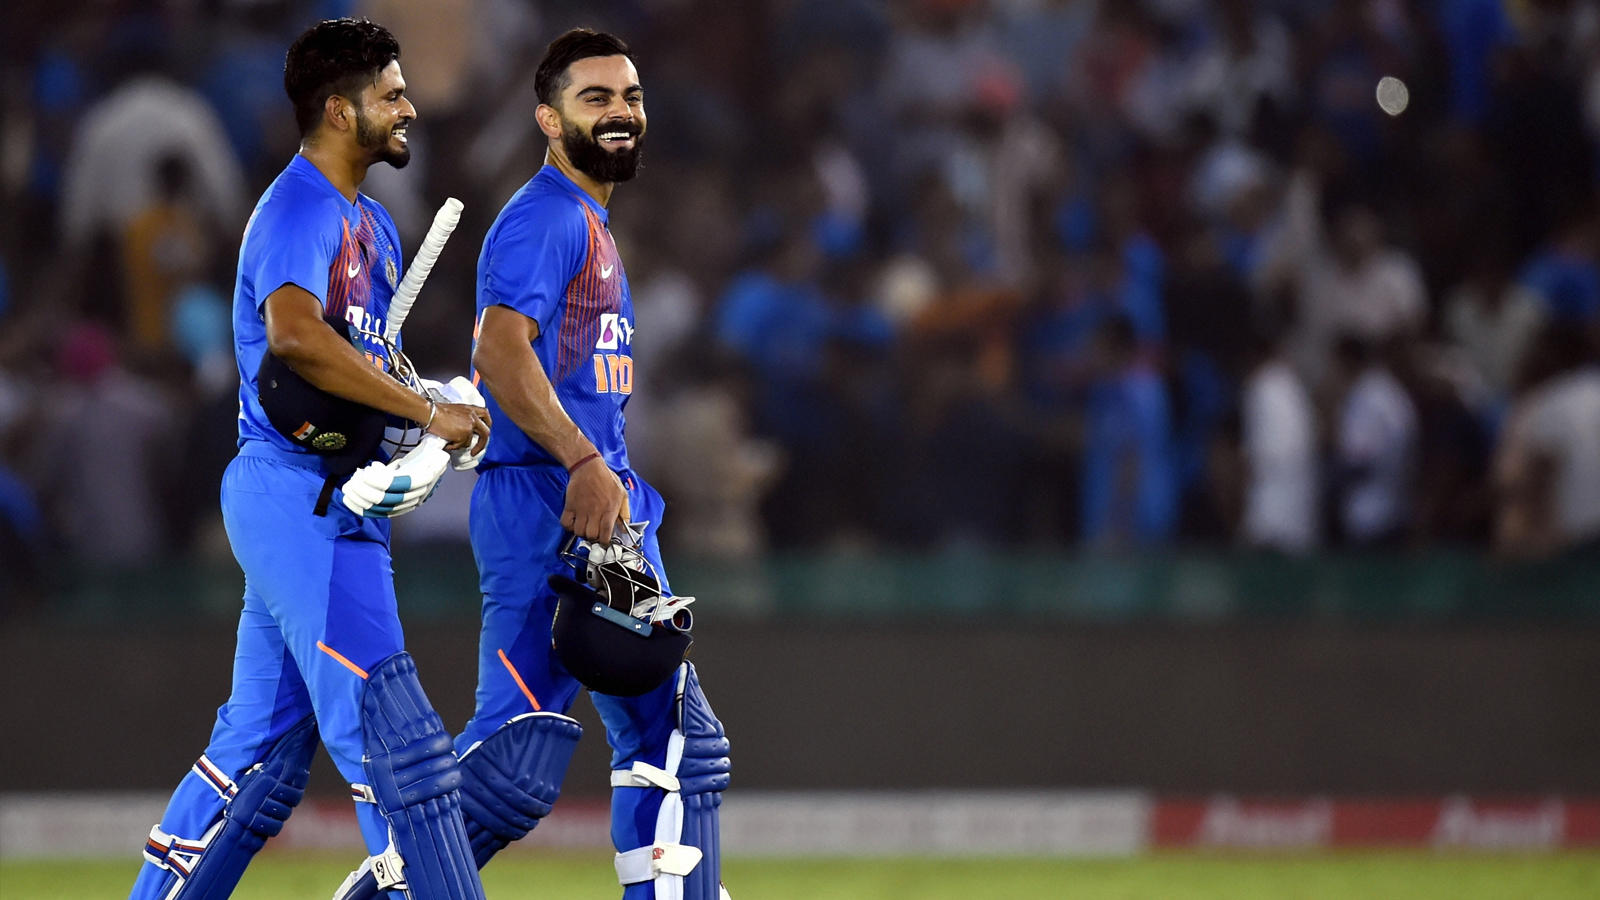 india-vs-sa-2nd-t20i-kohlis-72-powers-india-to-victory